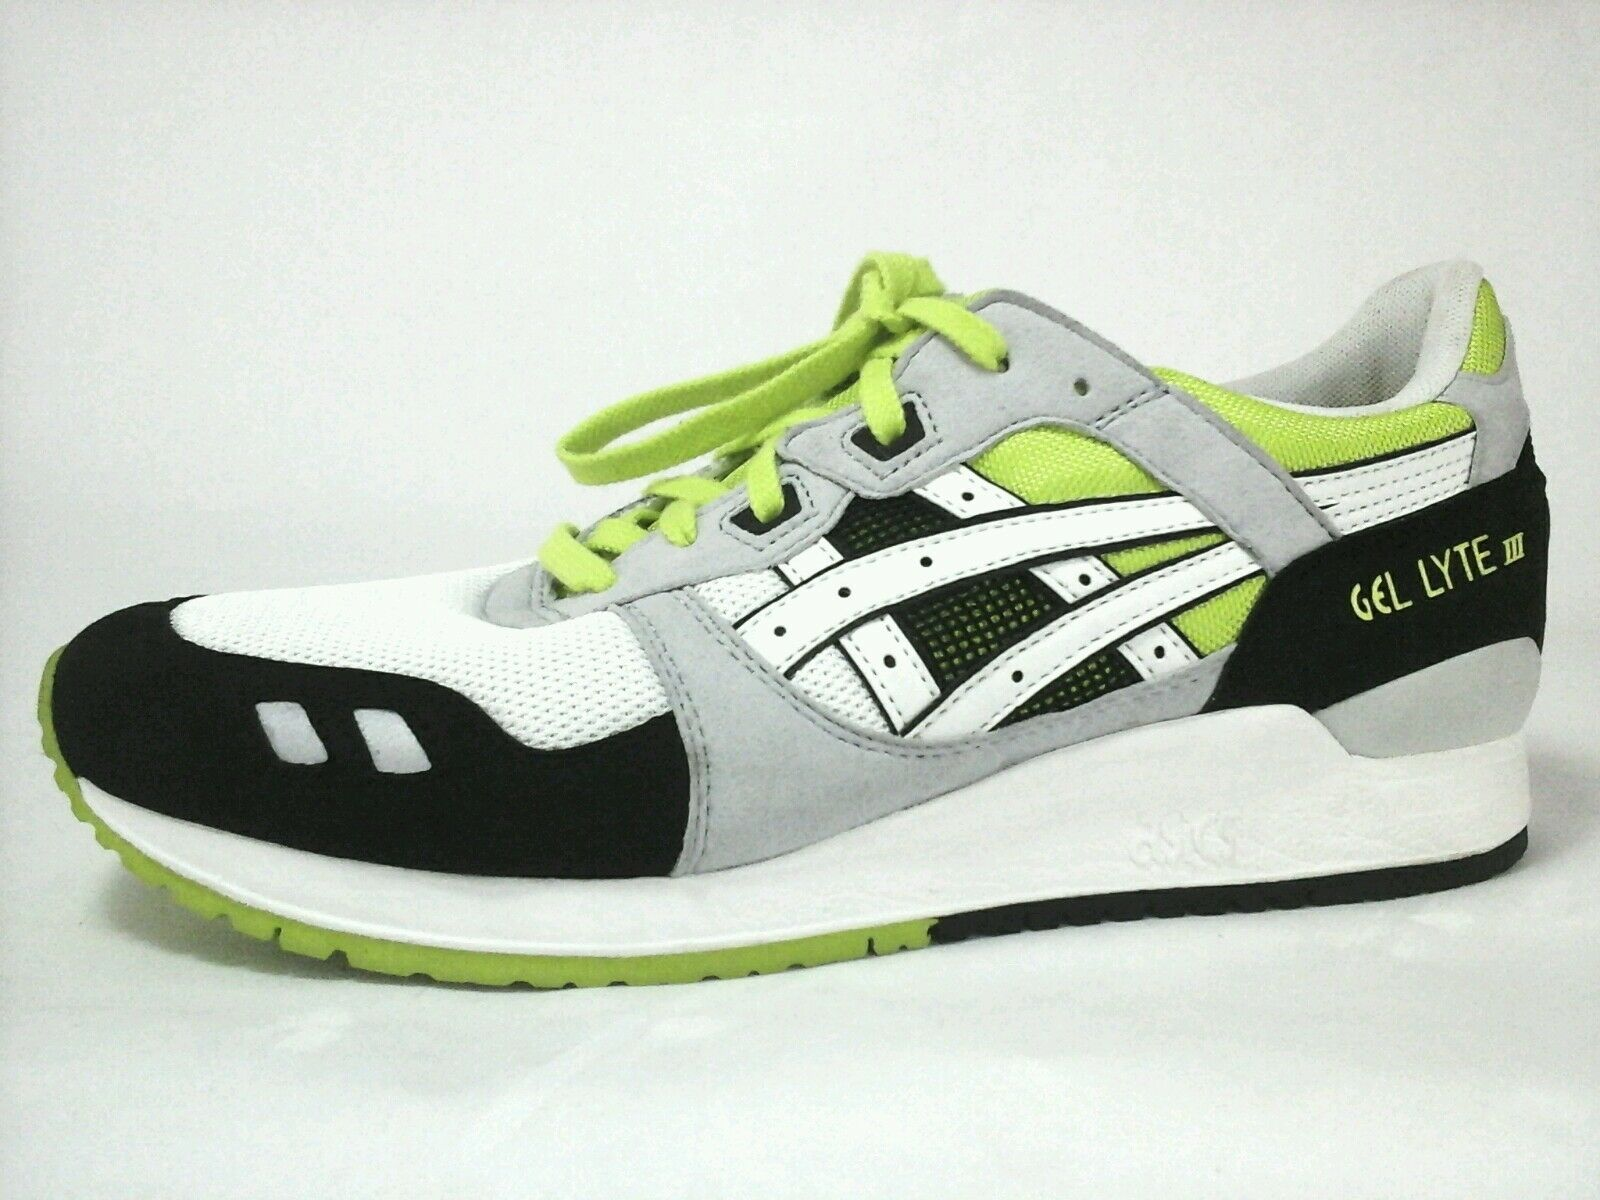 Details about Asics Gel Lyte III 3 Mens Shoes Sneakers Running Yoga Gym H307N US 11 EU 44 New